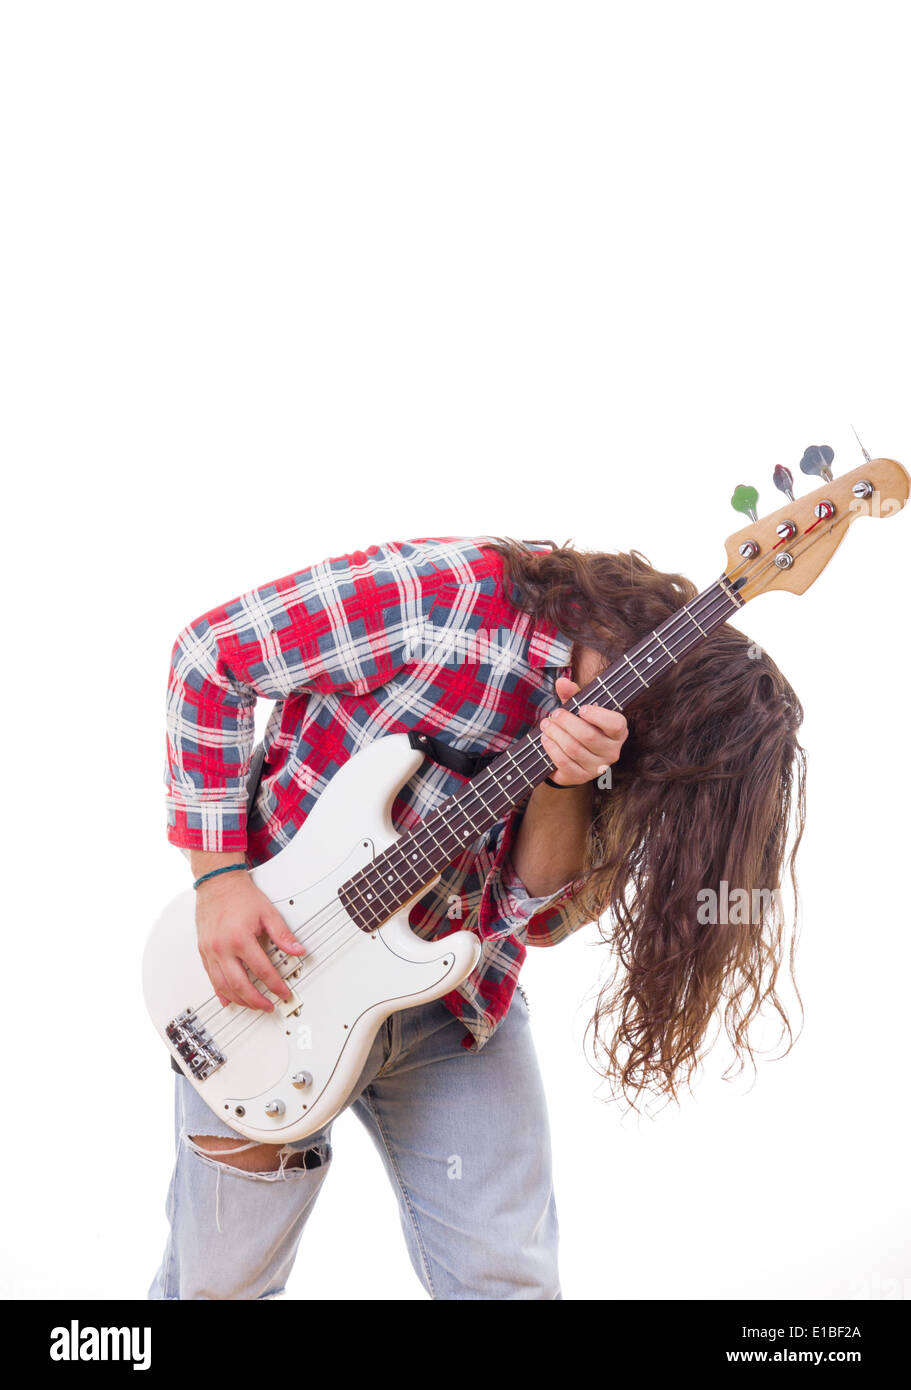 man in red shirt with tousled hair playing electric bass guitar - Stock Image